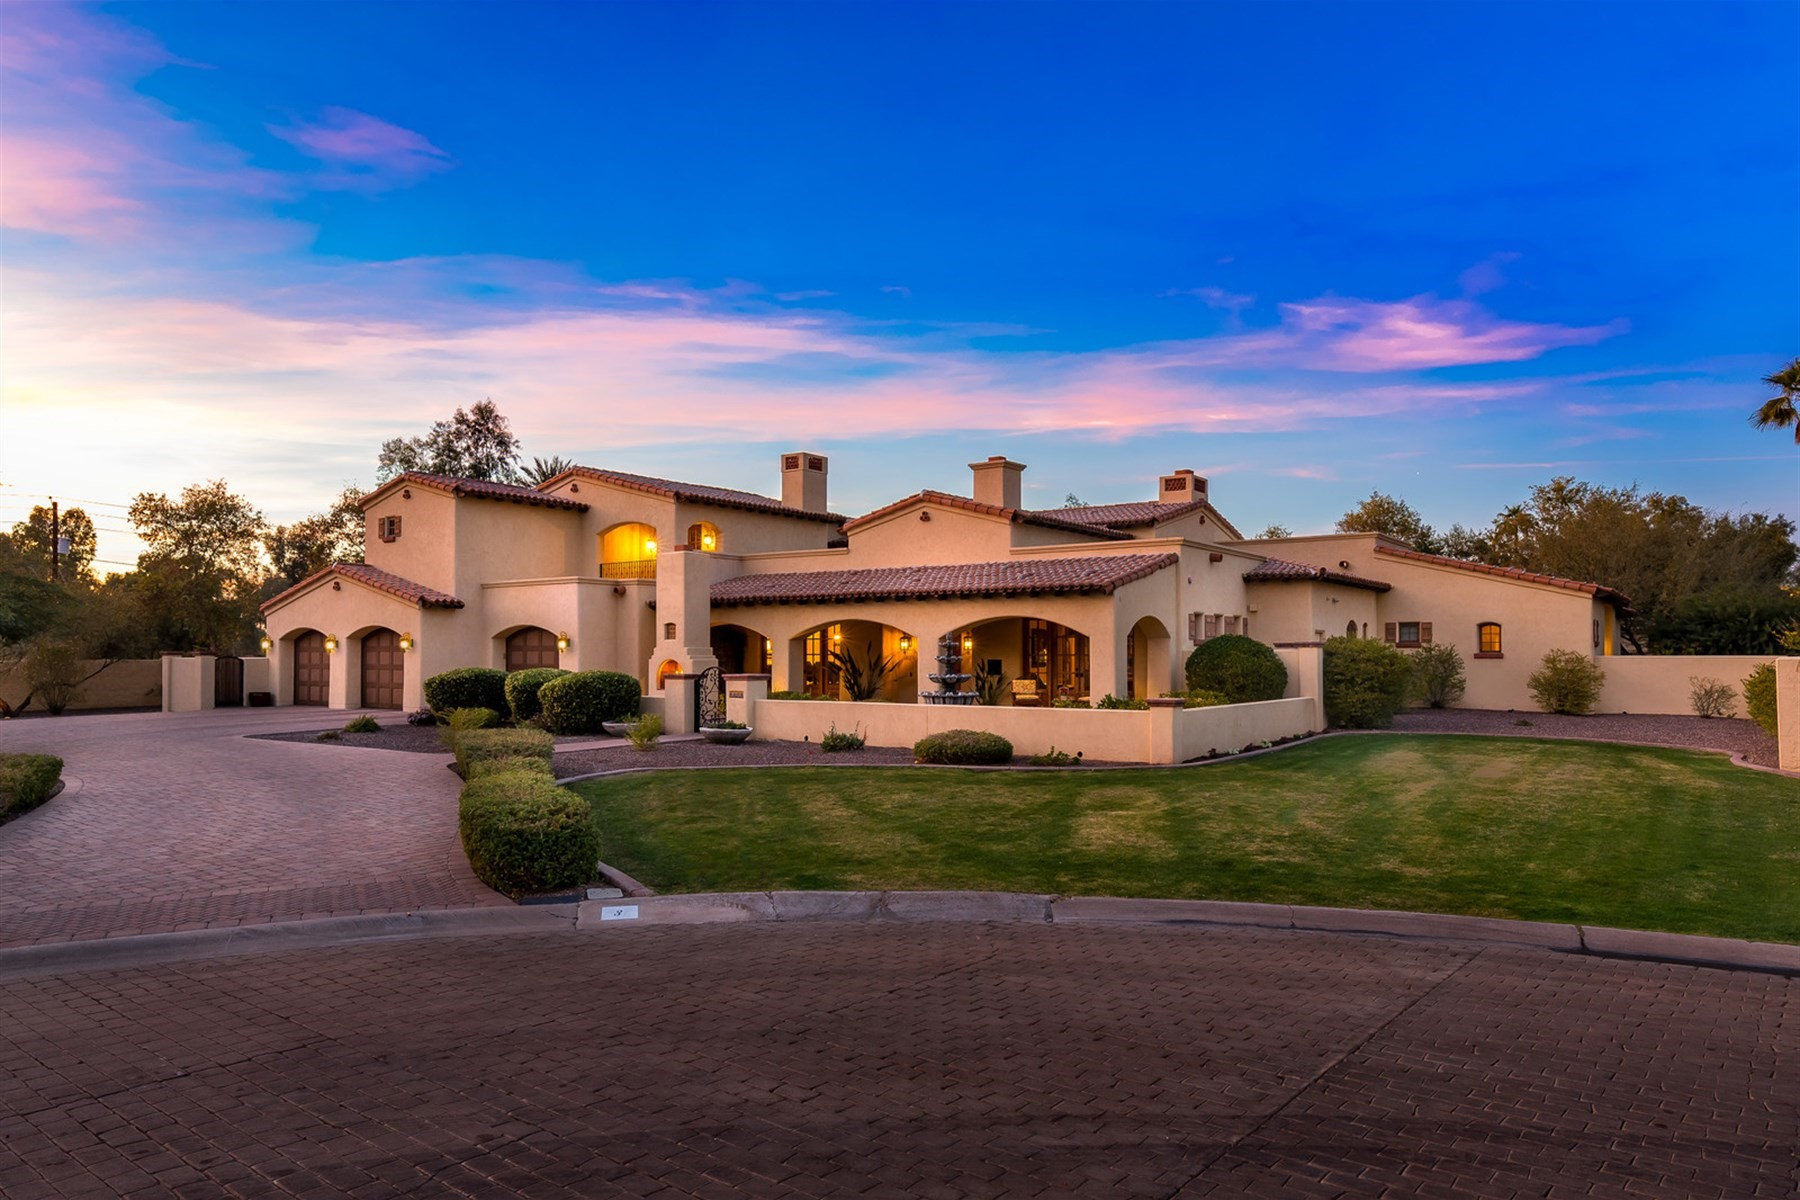 Single Family Home for Sale at Timeless Spanish Colonial in Equestrian Manor 6004 E Laurel Ln, Scottsdale, Arizona, 85254 United States